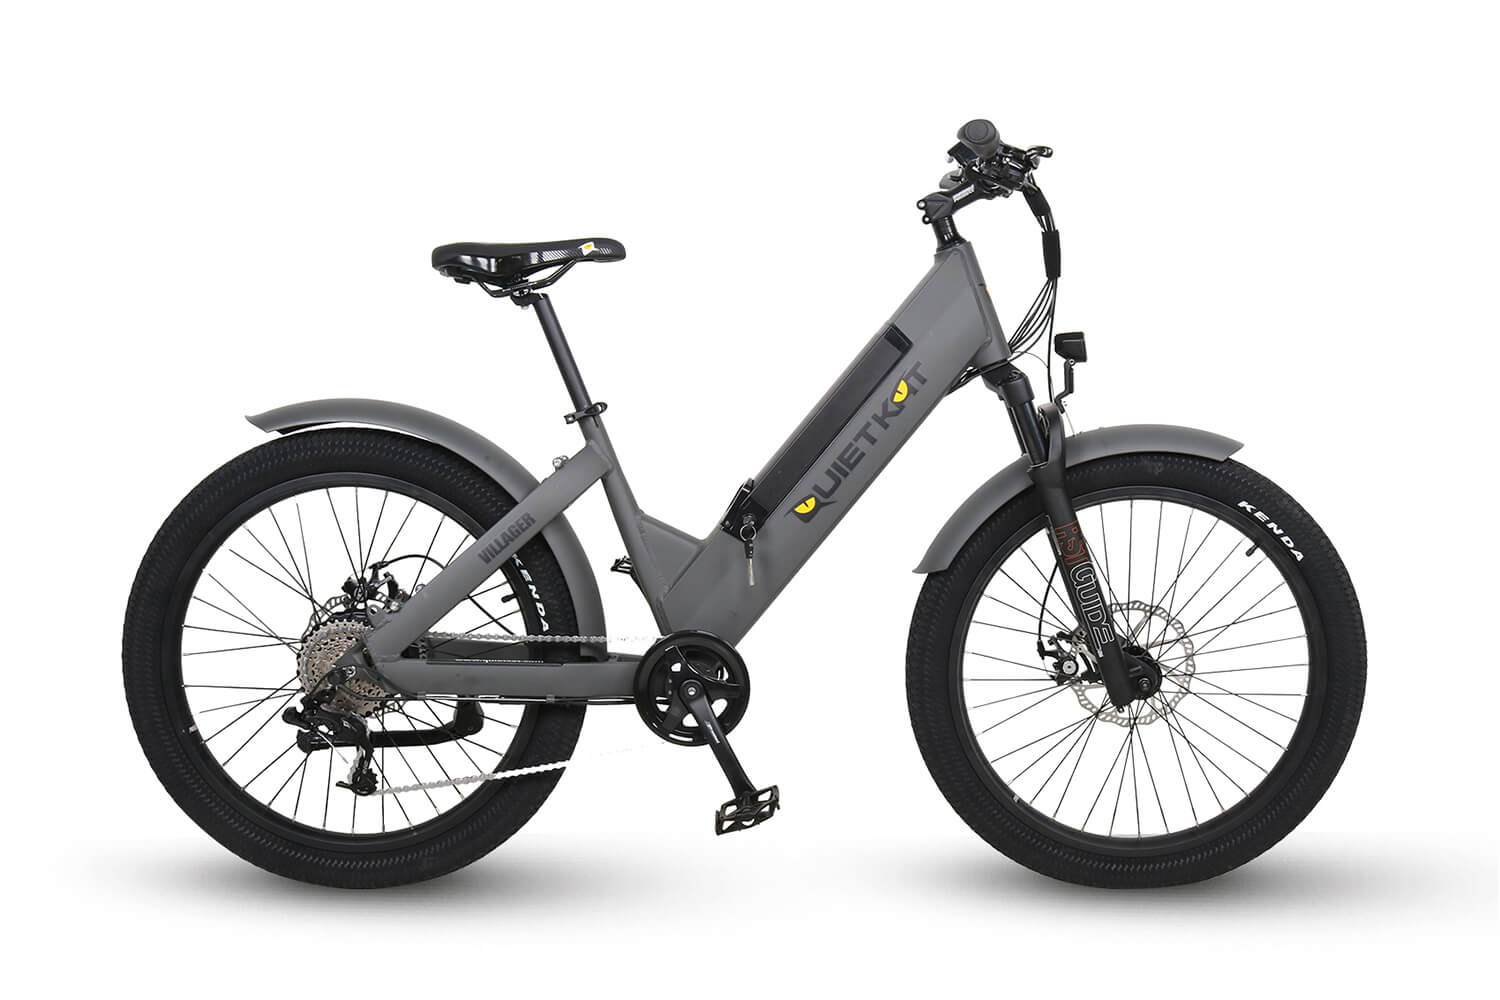 QuietKat 2020 Villager Fat Tire Electric Urban Bike